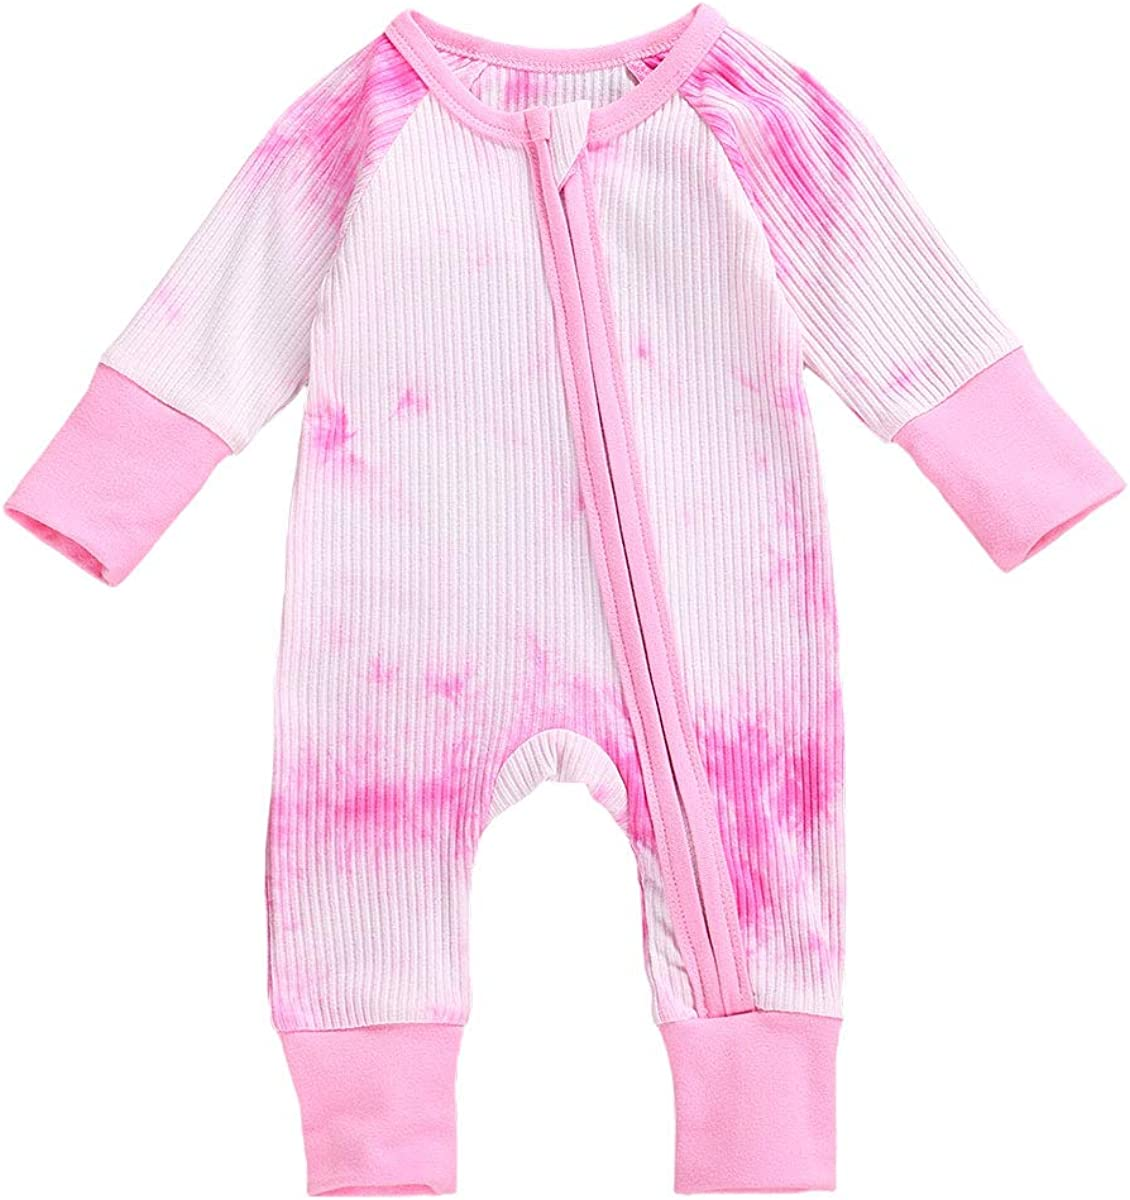 Sprifallbaby Zipper Newborn Baby Boy Girl Tie Dye Romper Winter Jumpsuit Ribbed Cotton Pajamas Clothe One-Piece Outfits